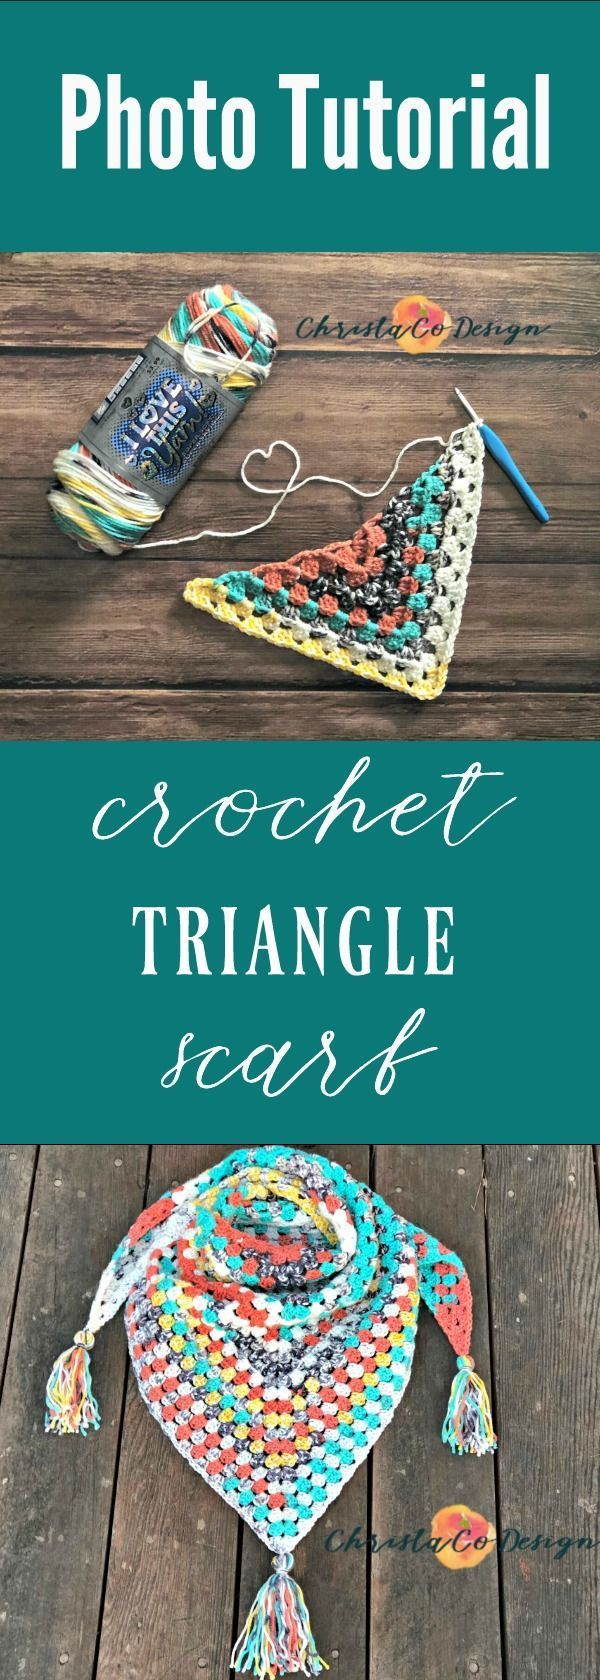 Crochet Triangle Scarf Photo Tutorial & Giveaway